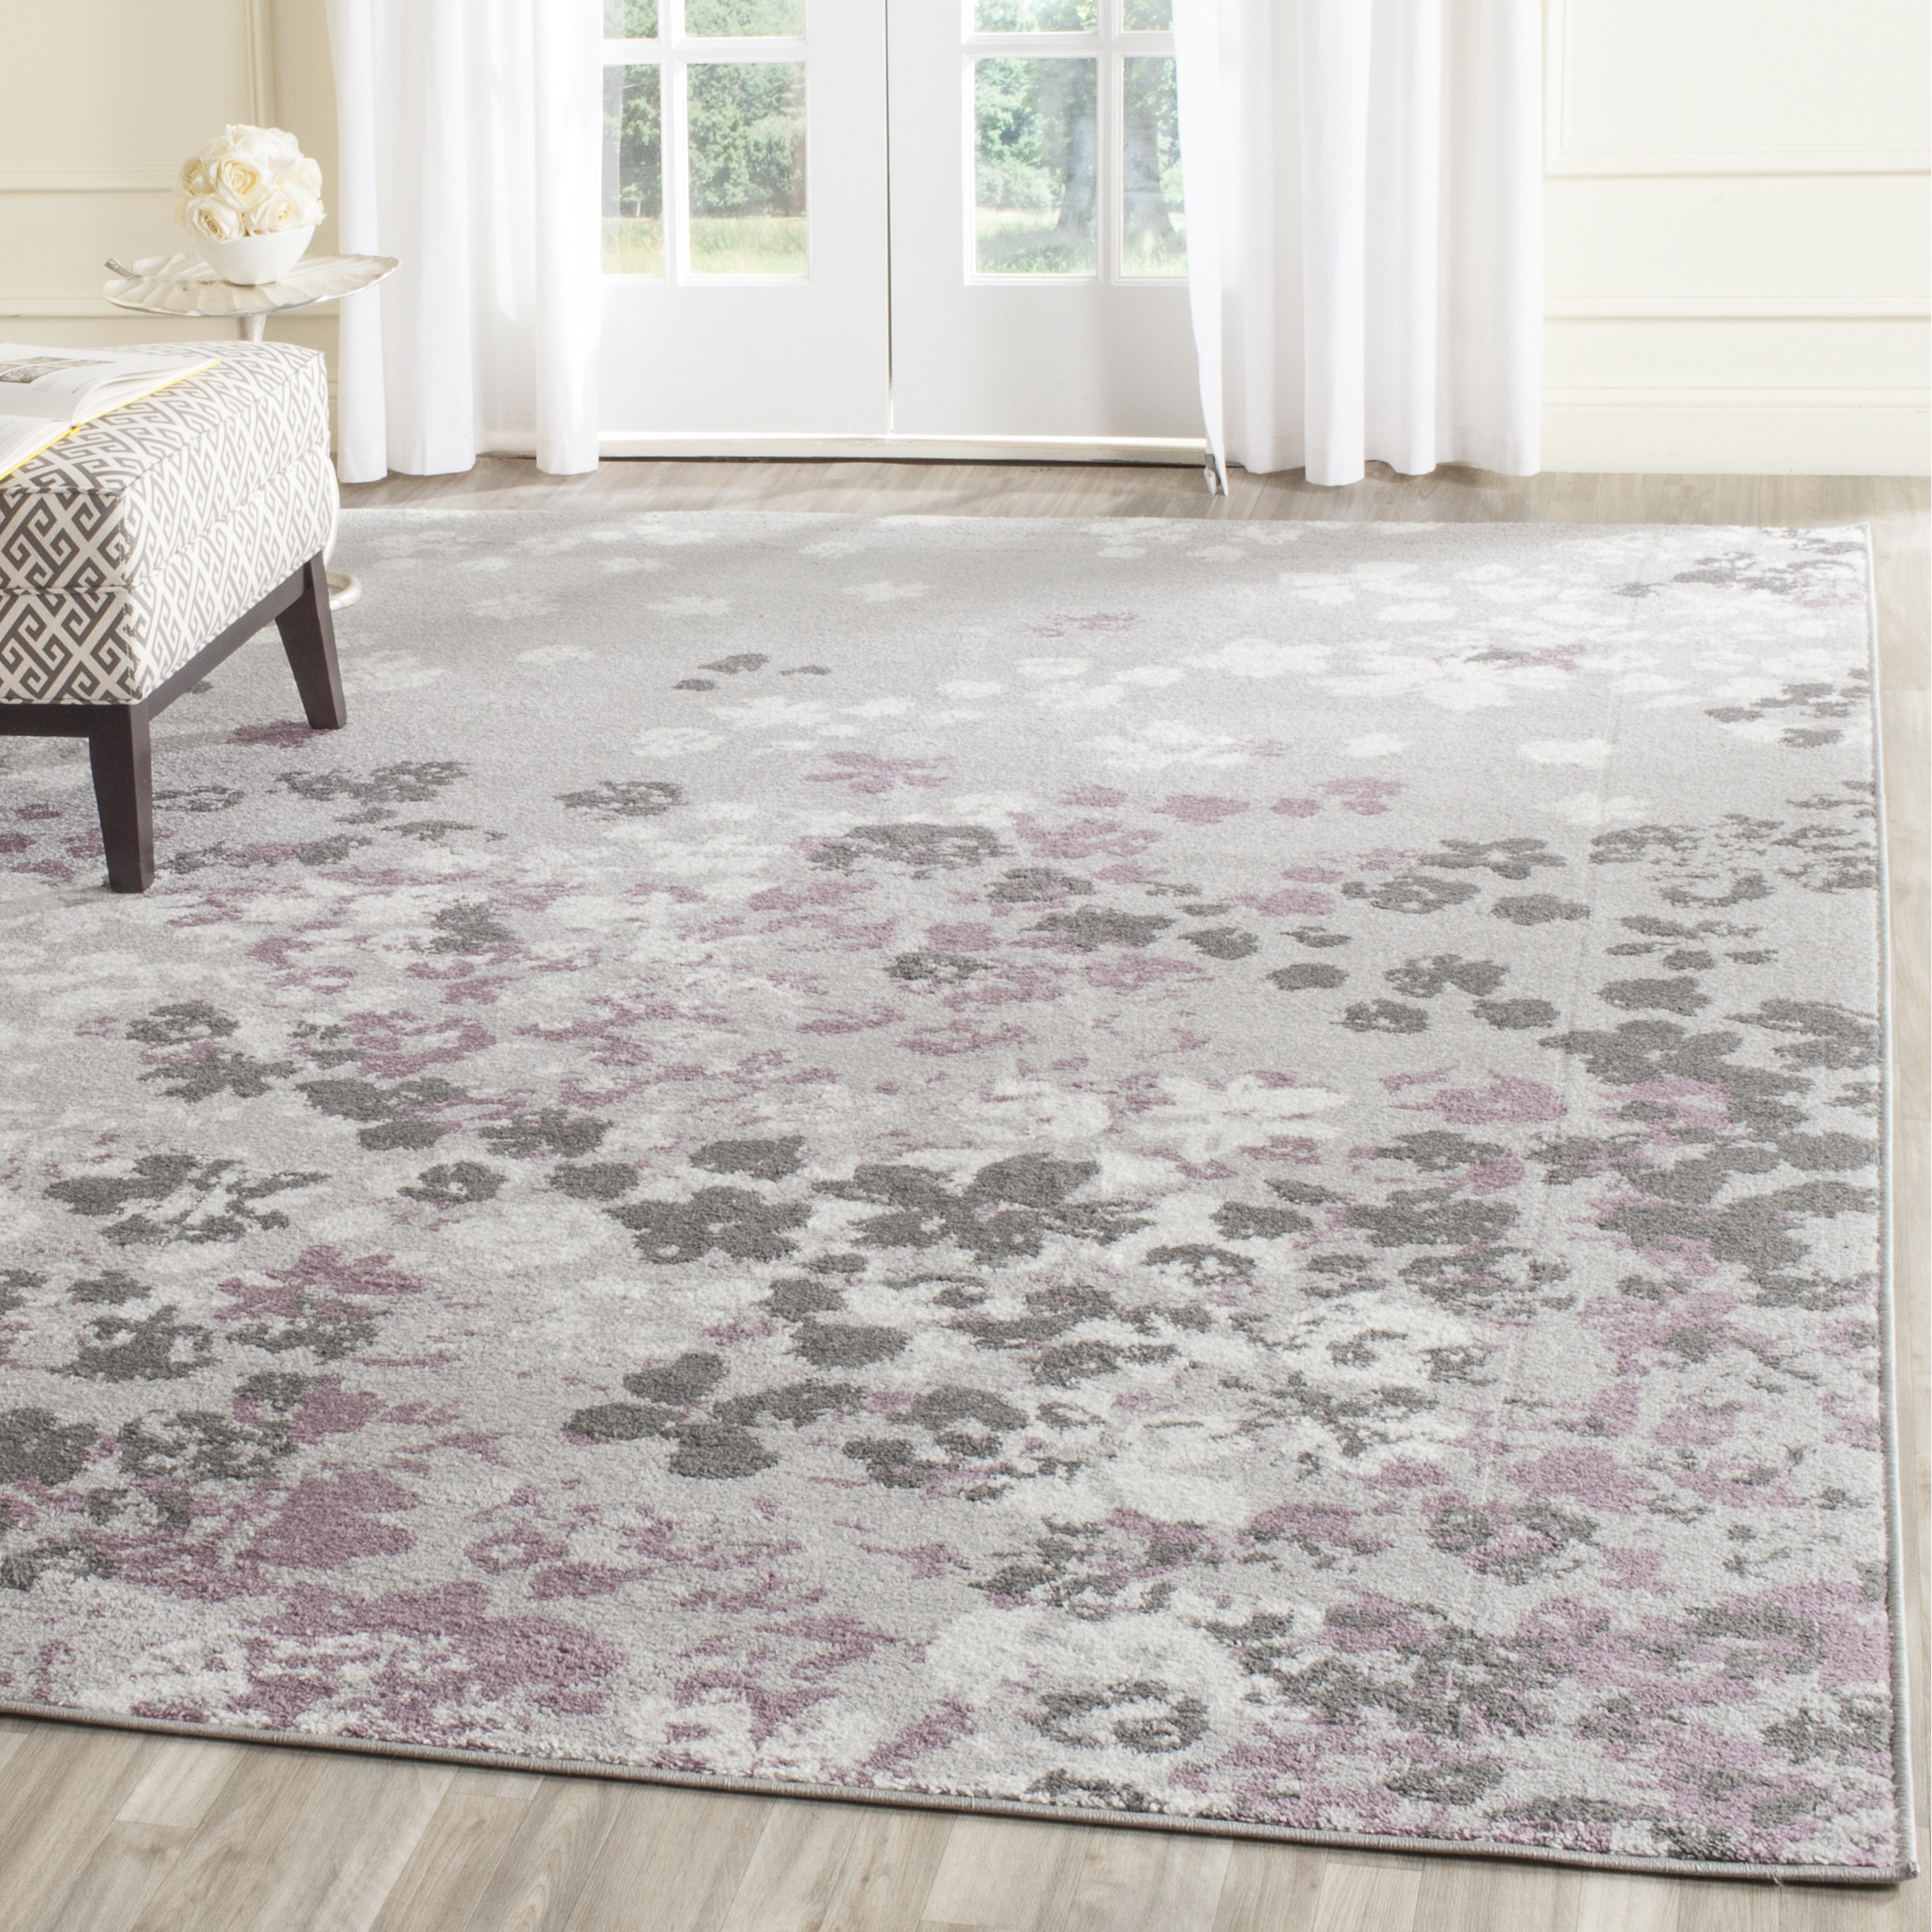 Light Purple Rugs Roselawnlutheran With Regard To Lilac Rugs (Image 6 of 15)